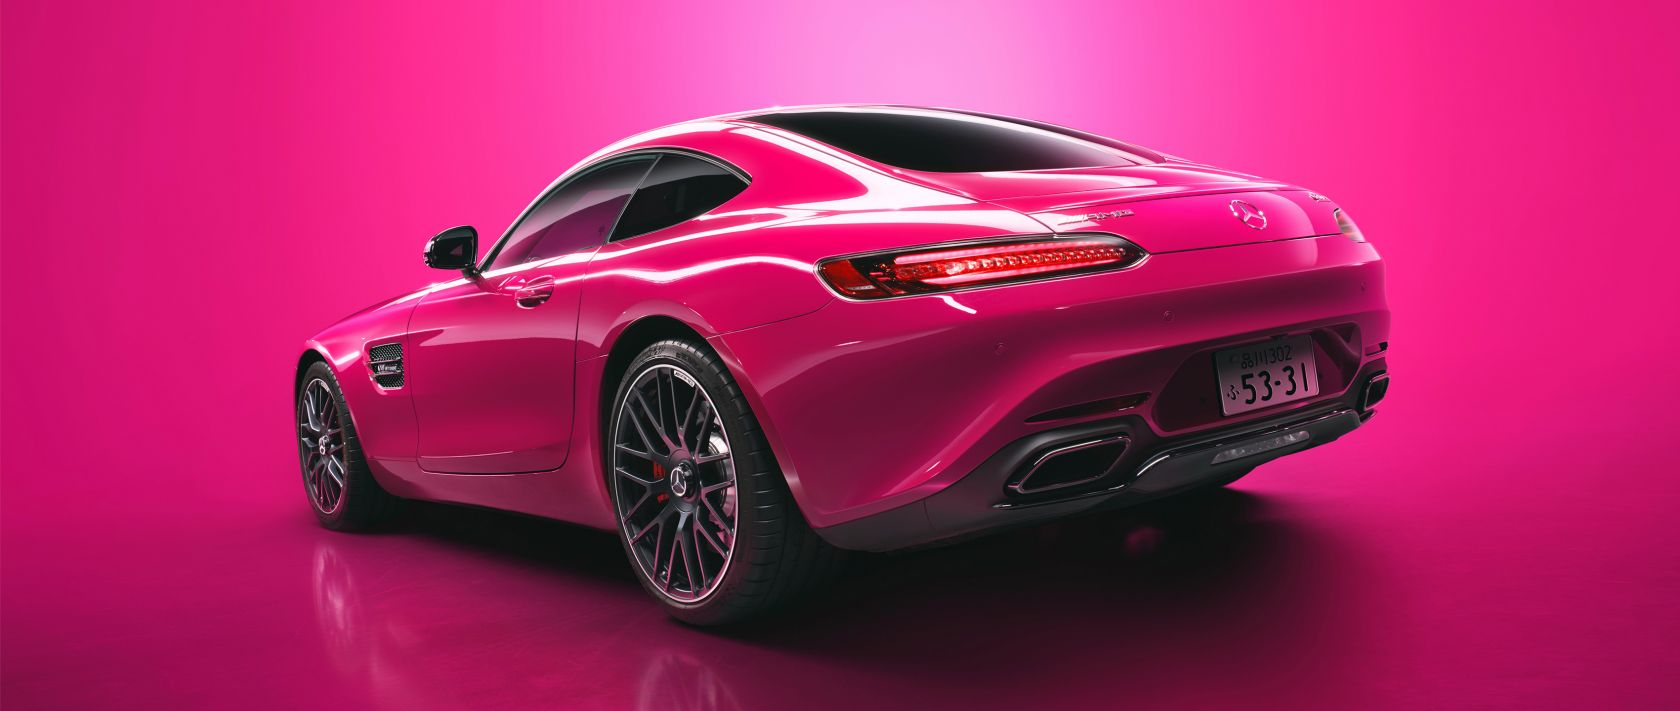 The Mercedes-AMG GT S in pink with pink background